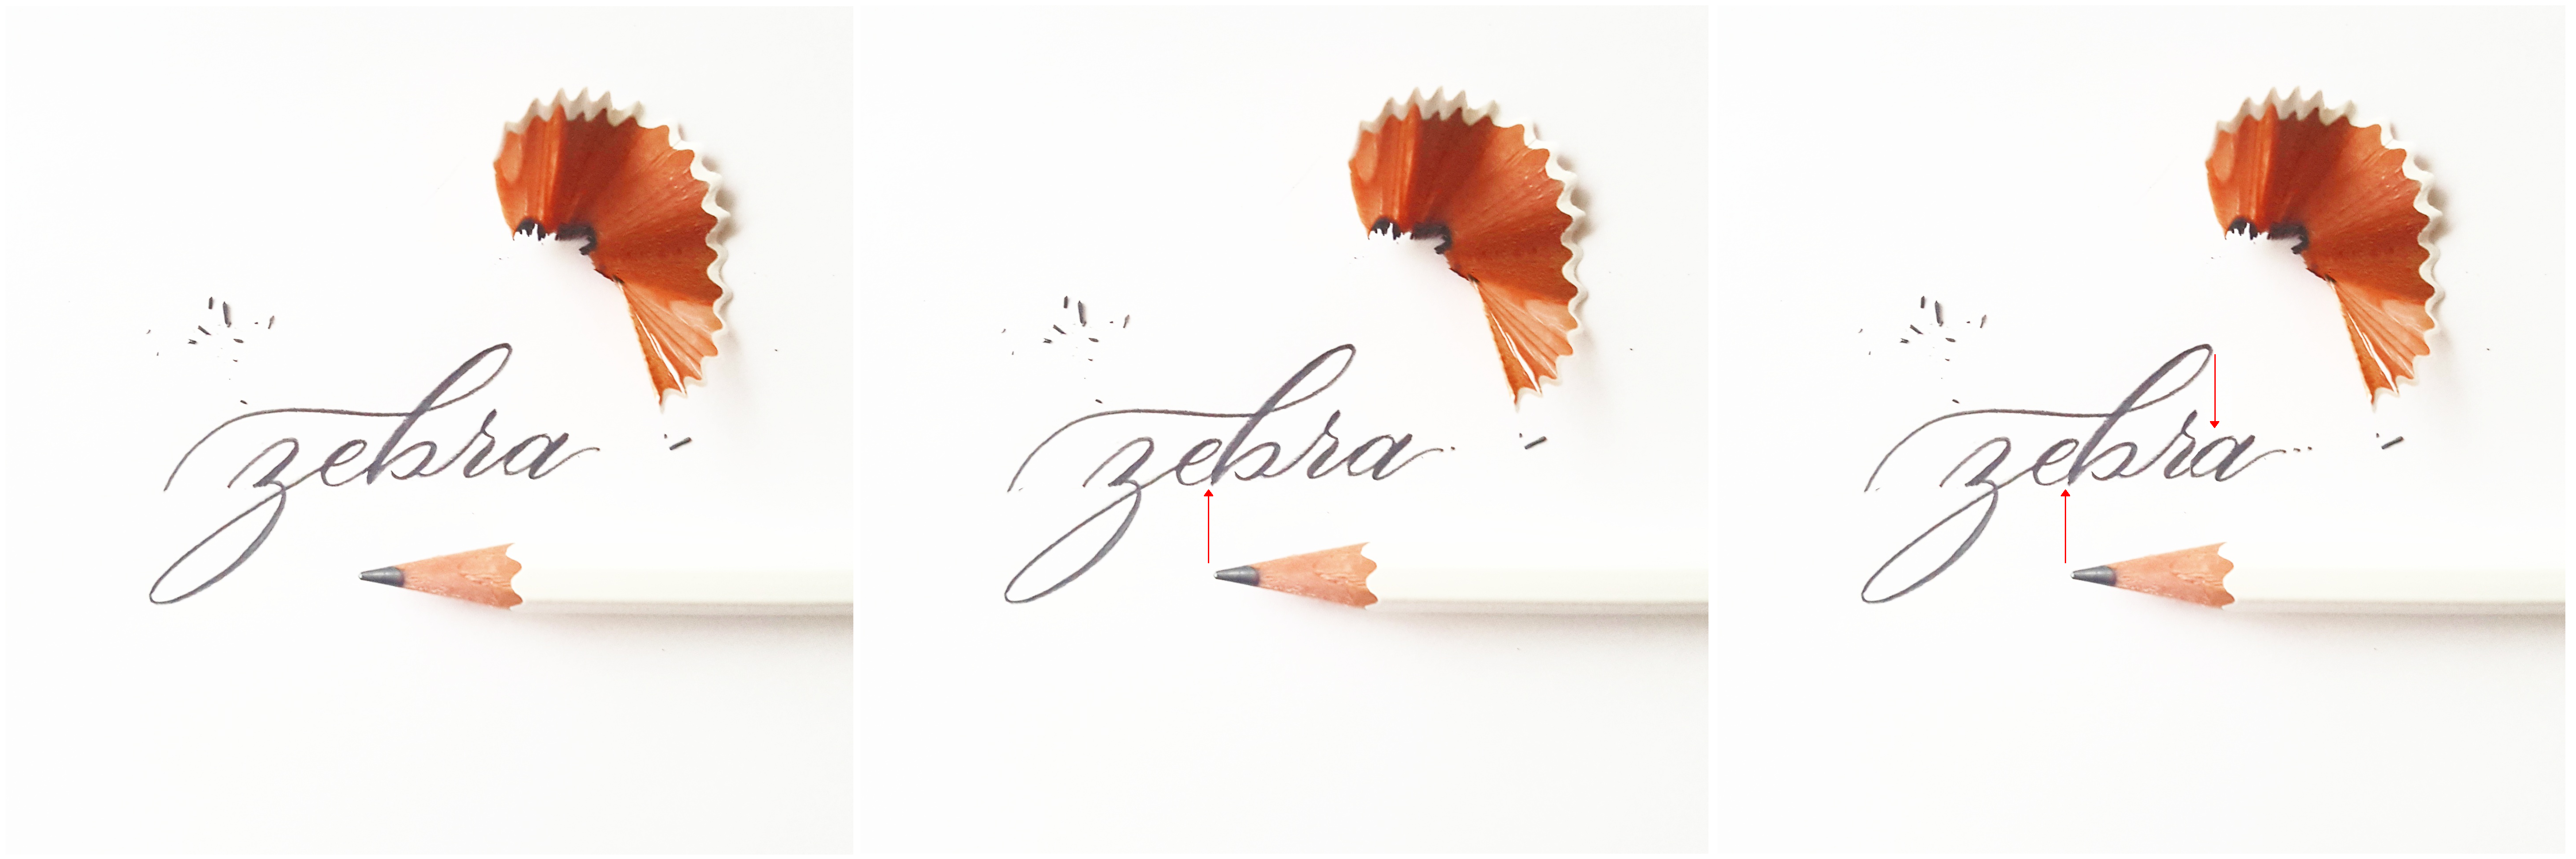 Parctice brush lettering with a pencil and keep an eye out after cluttered words where the spacing is uneven